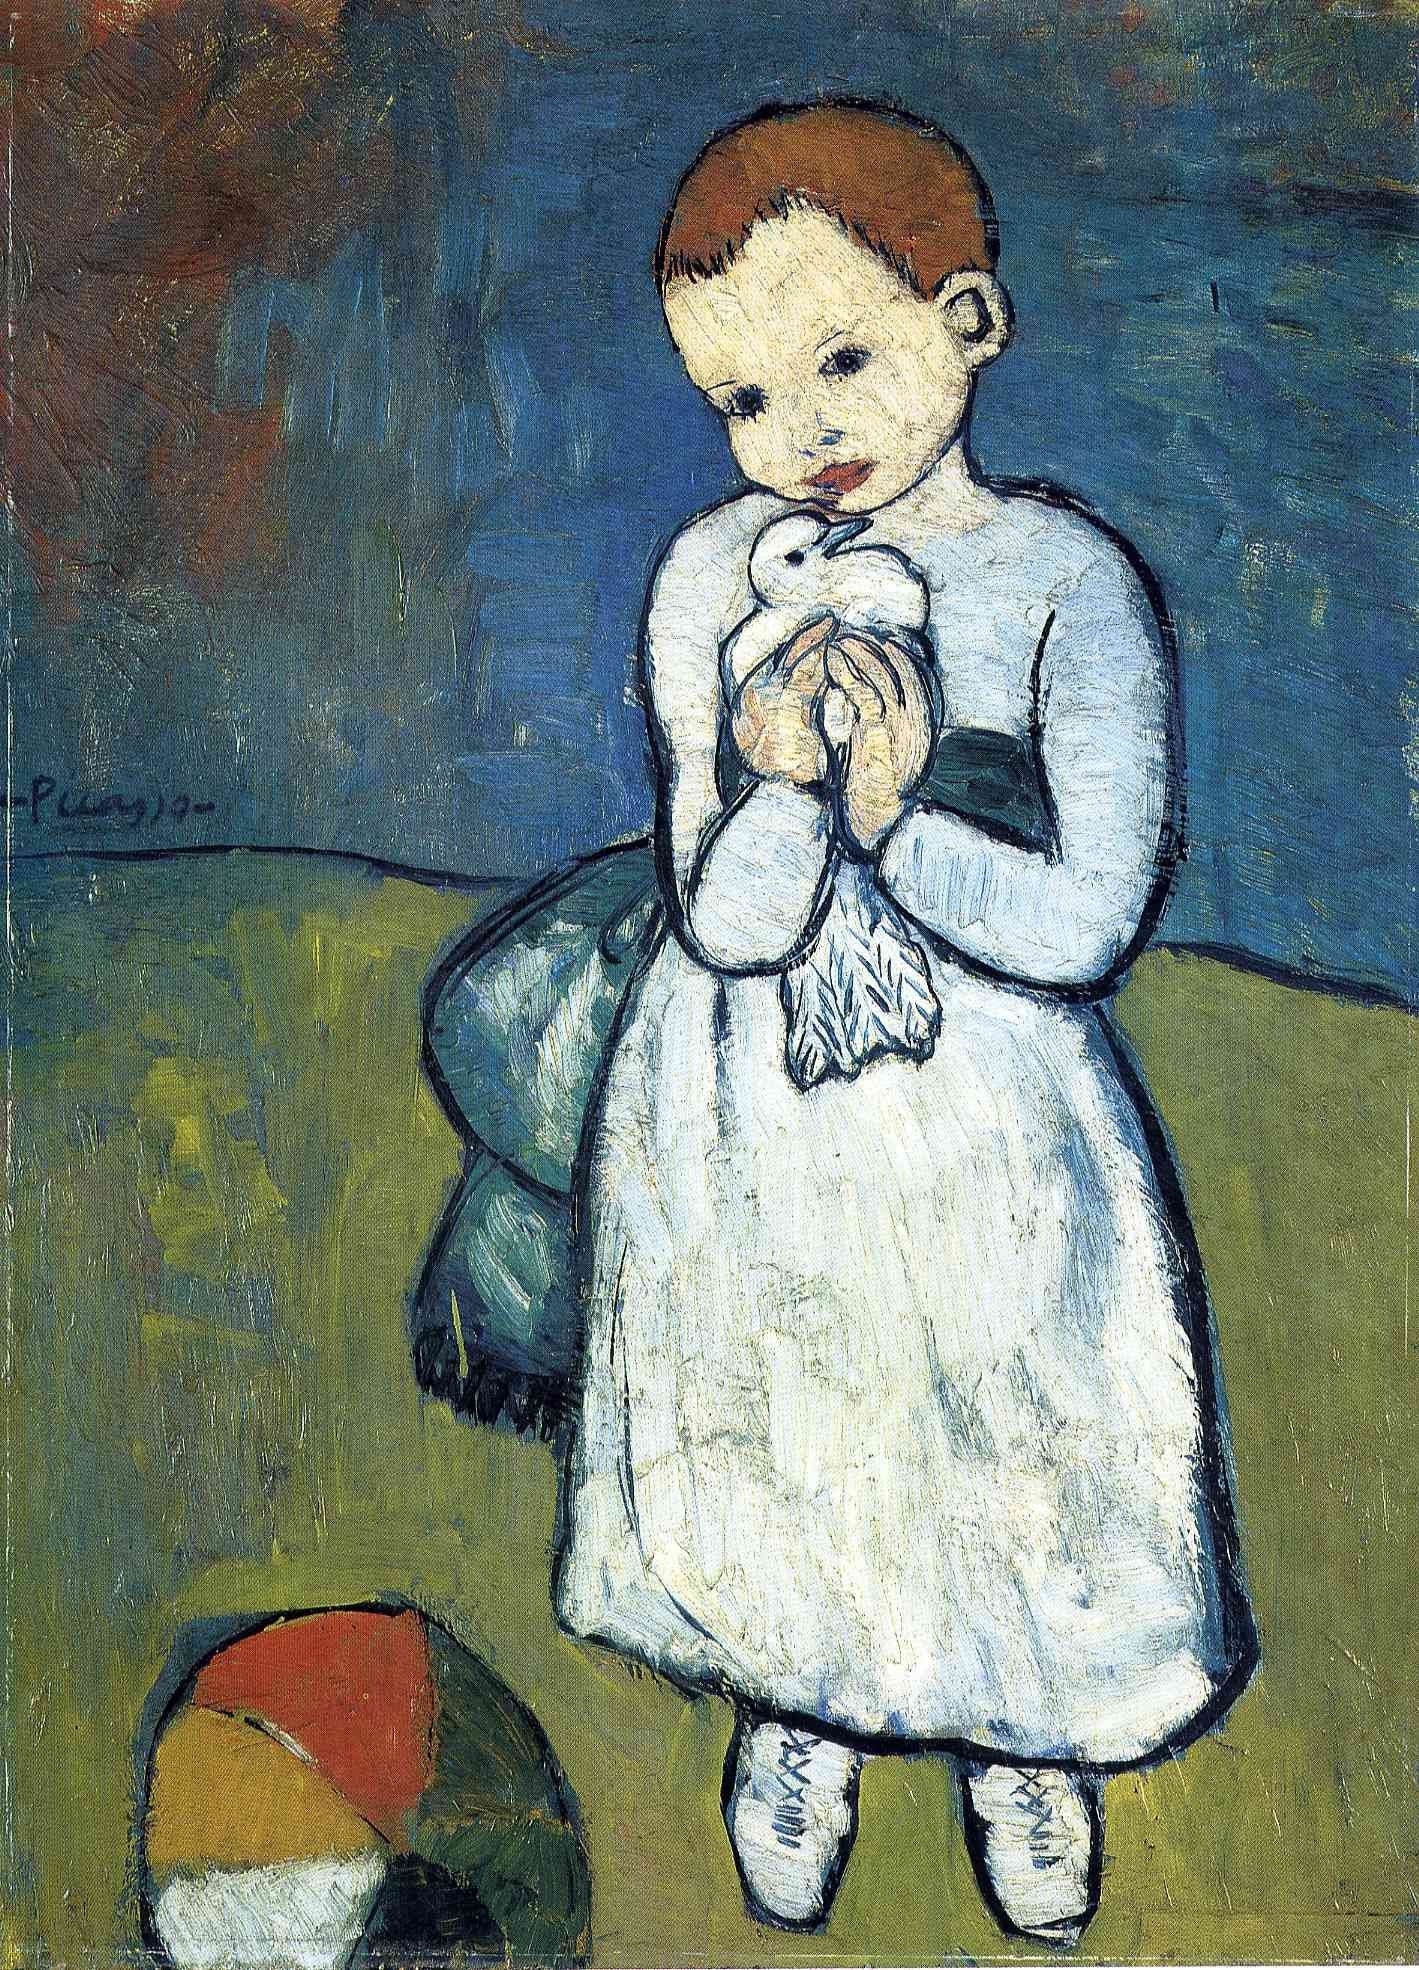 Pablo Picasso Child With a Dove PHOTO Art Print of 1901 Painting BLUE PERIOD